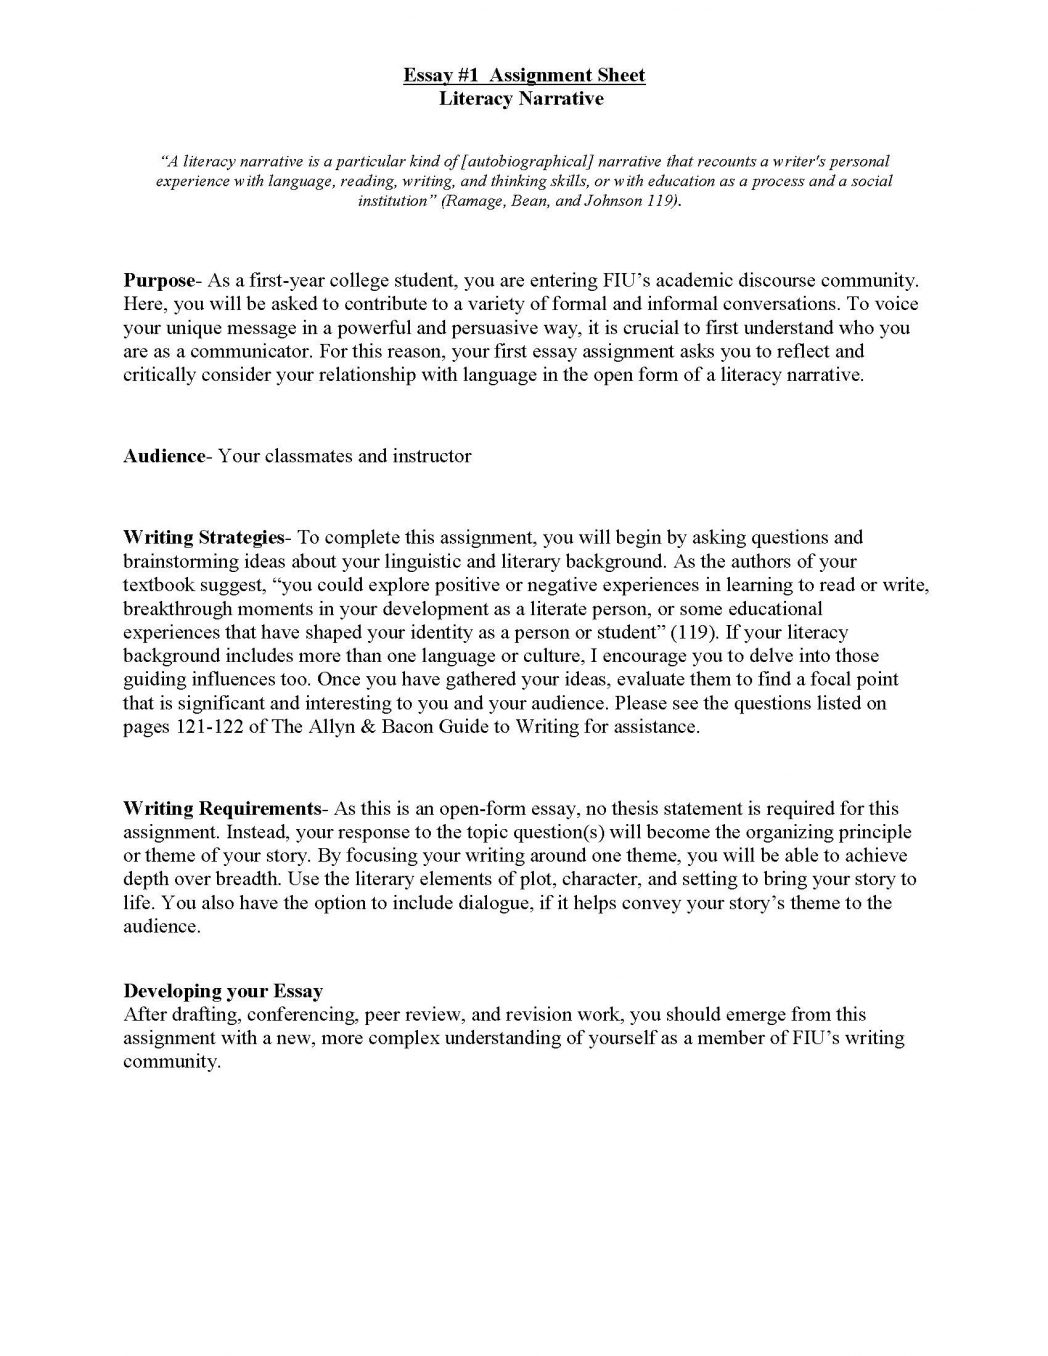 010 Thesis Statement For Narrative Essayes Of Outline Good Descriptive Topics Literacy Unit Assignment Spring 2012 P Personale 1048x1356 Staggering Essay How To Write A Personal Examples The Should Be Created During Brainly Full